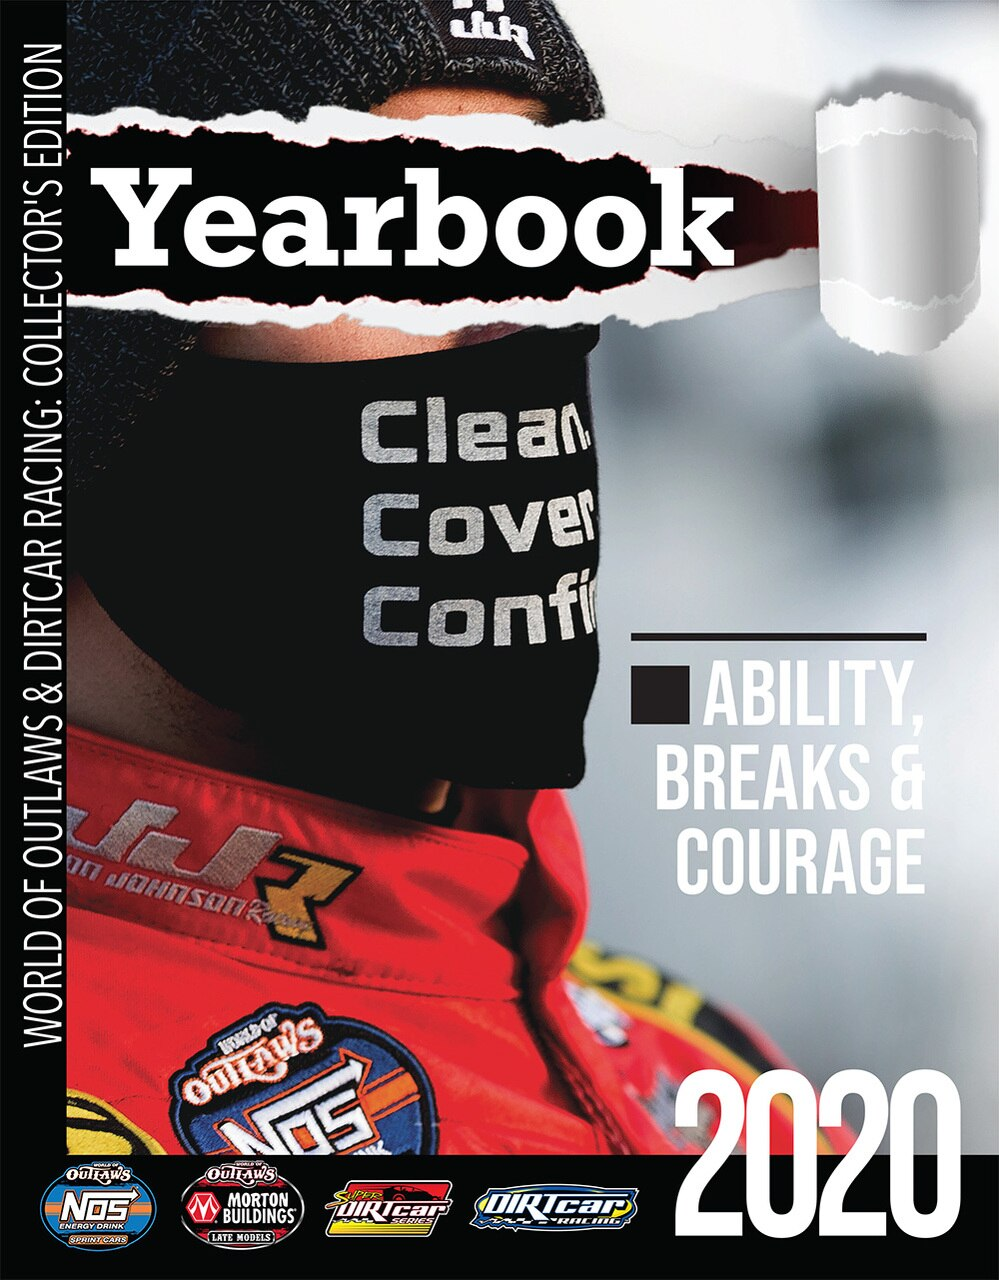 2020 Souvenir Yearbook